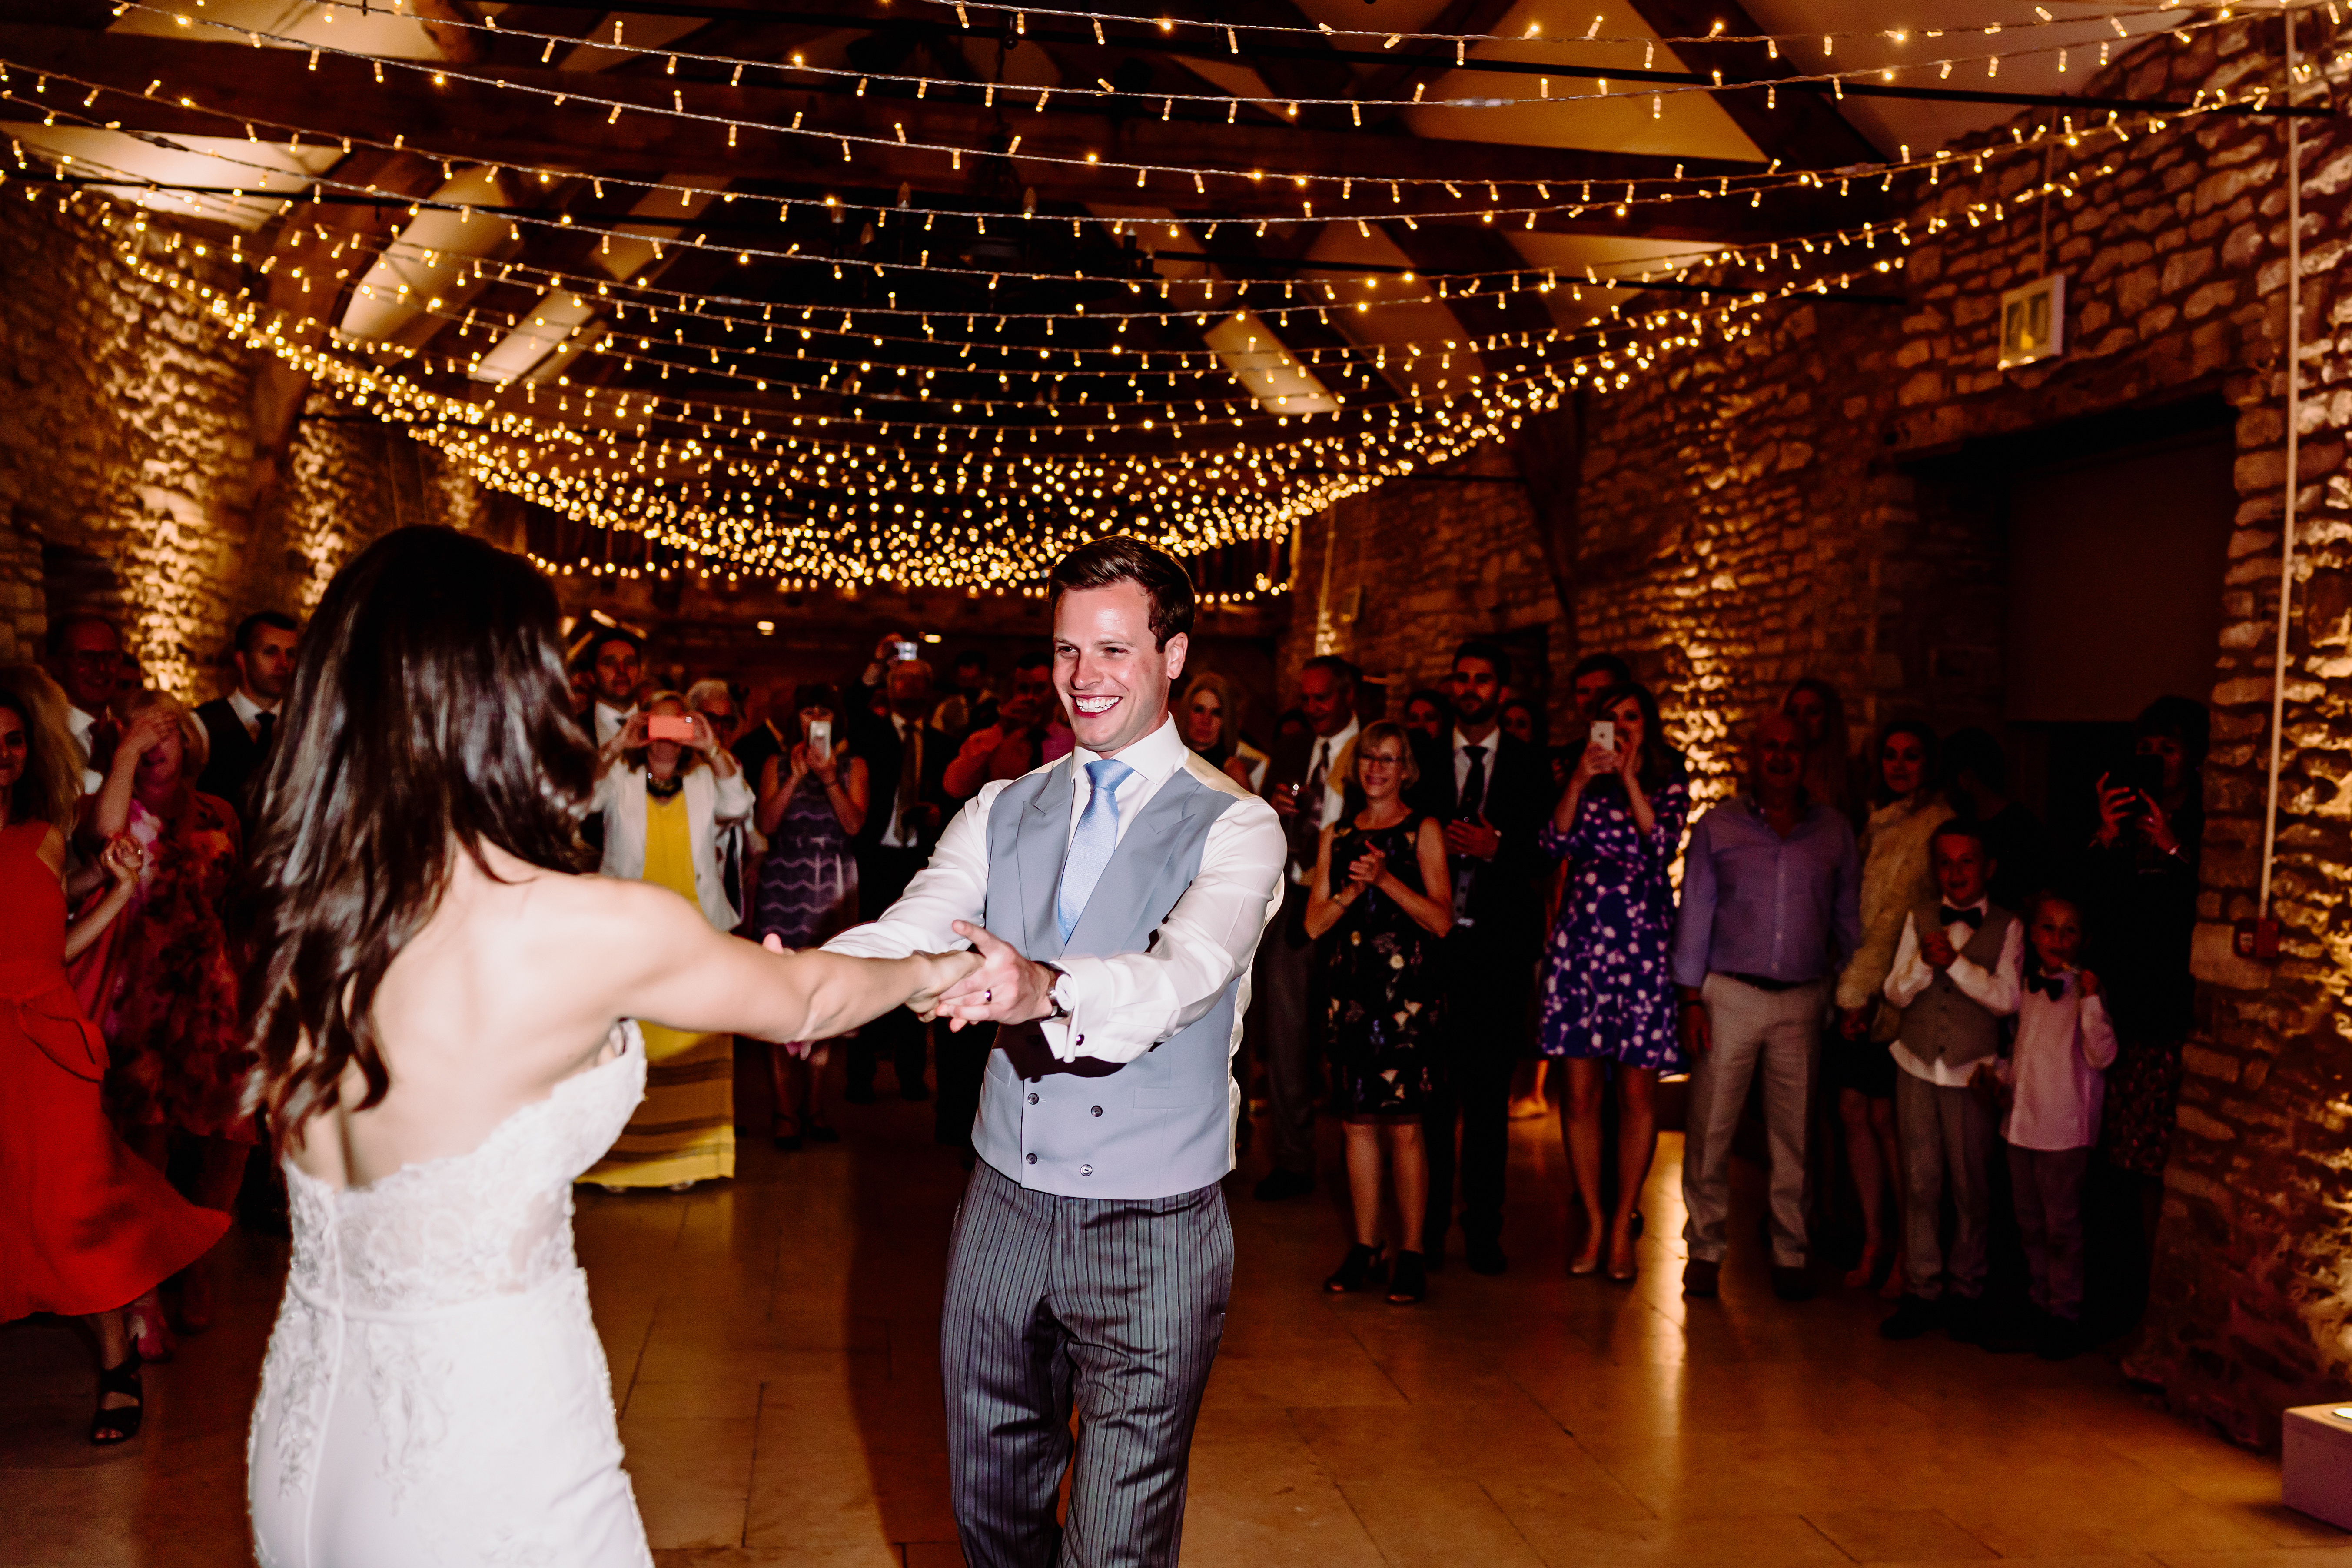 the first dance at a wedding